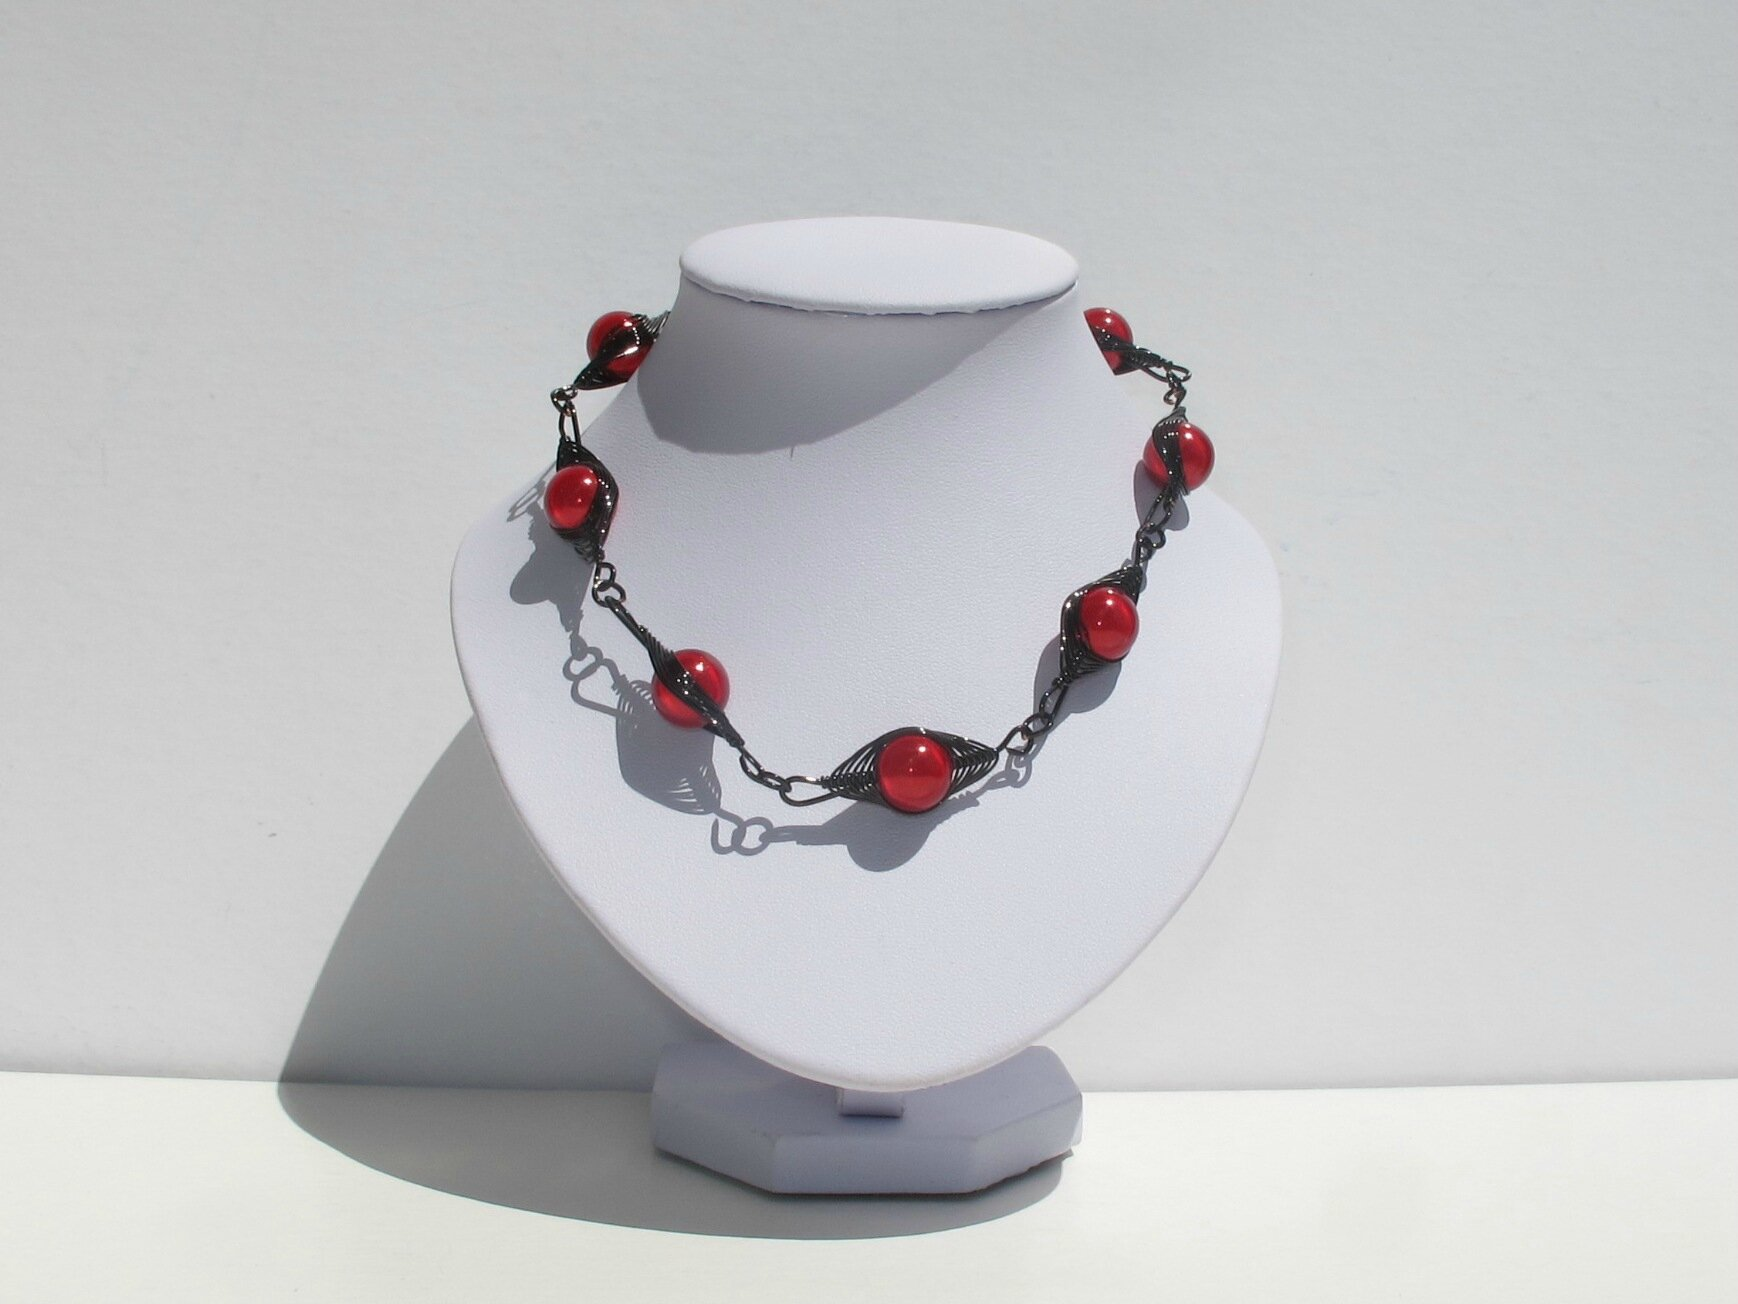 collier wire noir perles rouges buste blanc